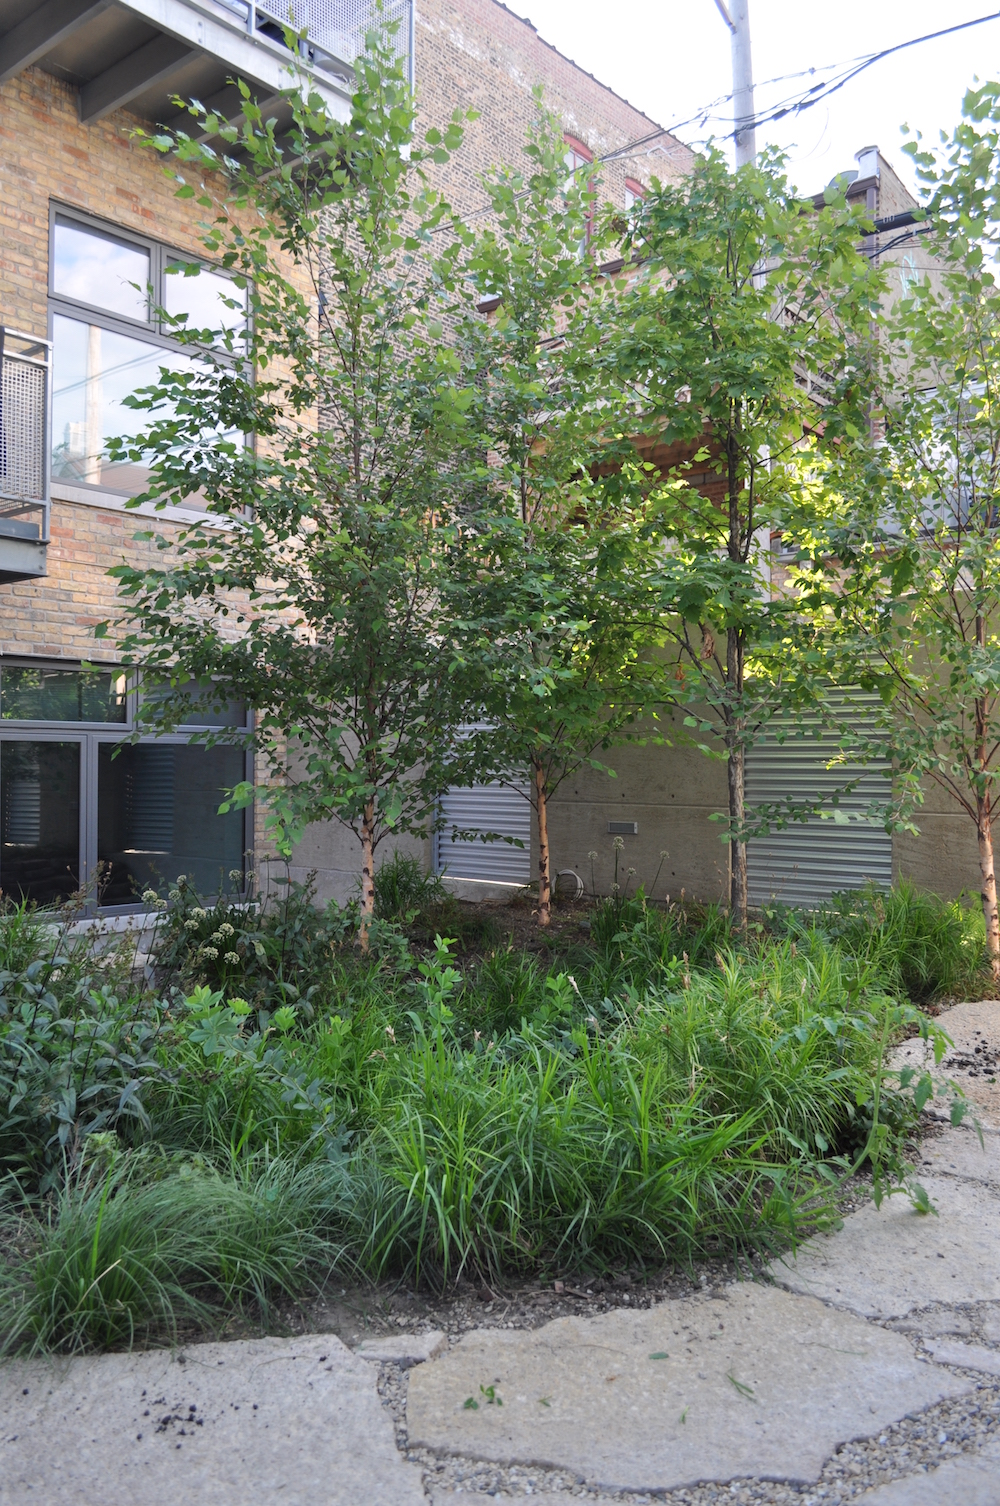 ecogardens-bucktown-adaptive-reuse-5.JPG